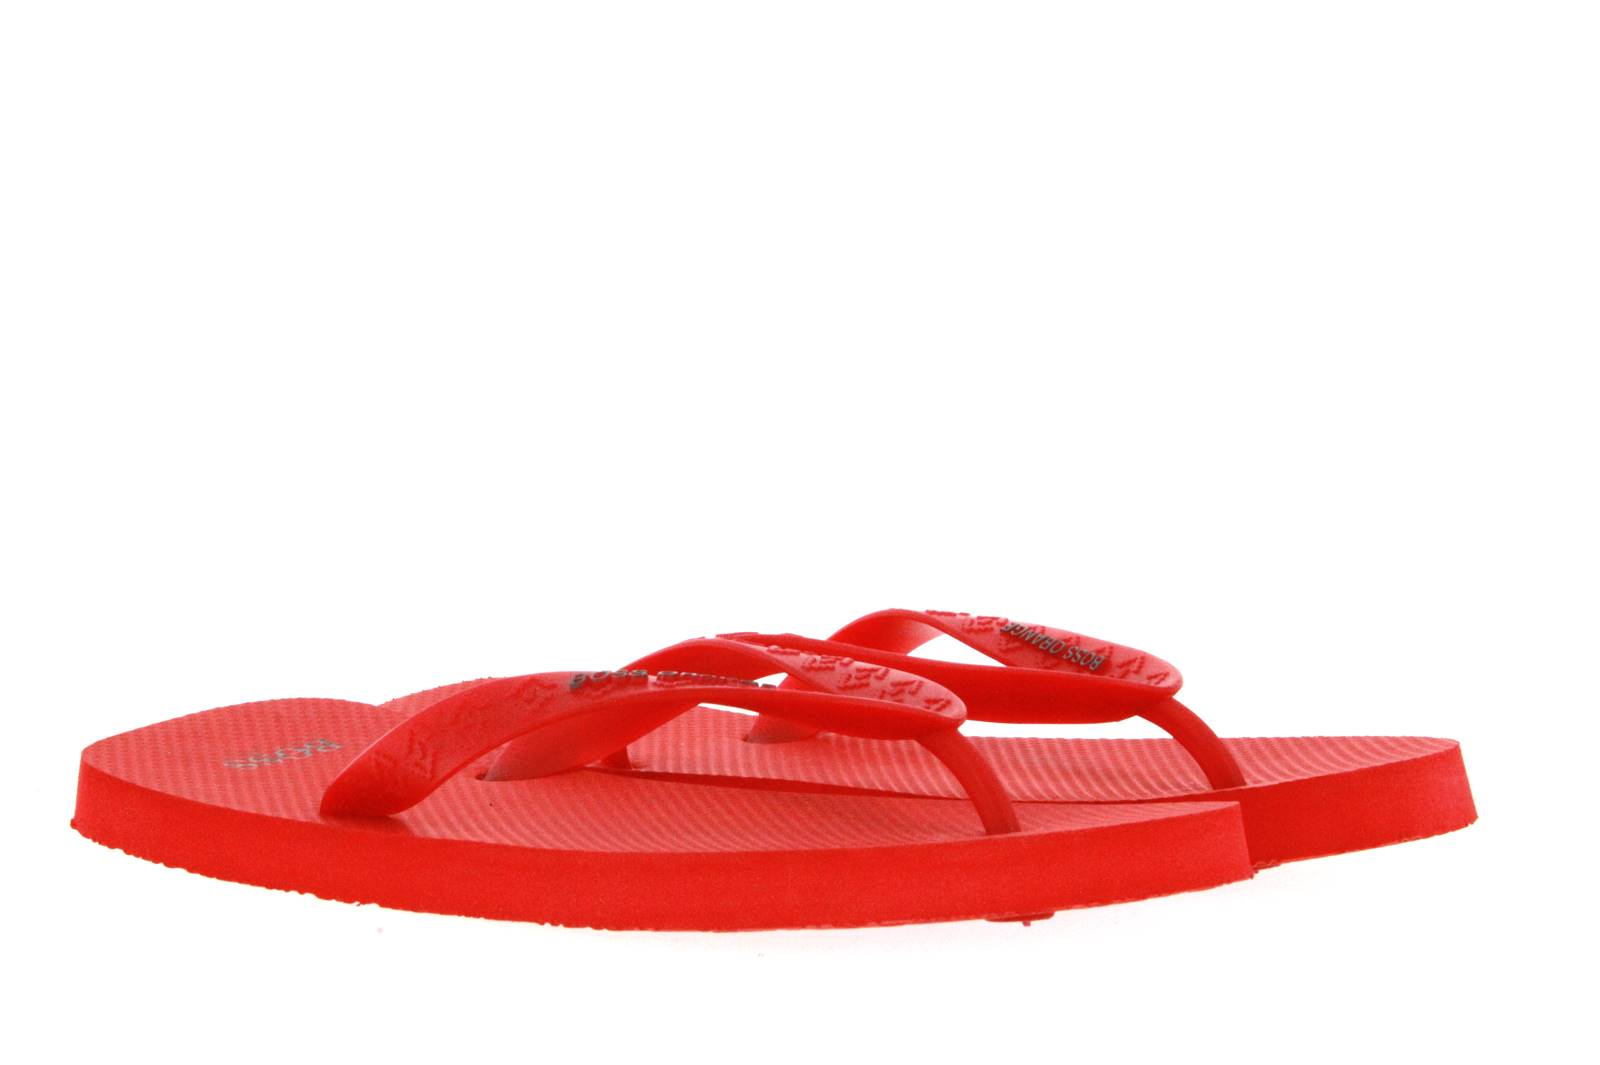 Hugo Boss flip flop LOY RED